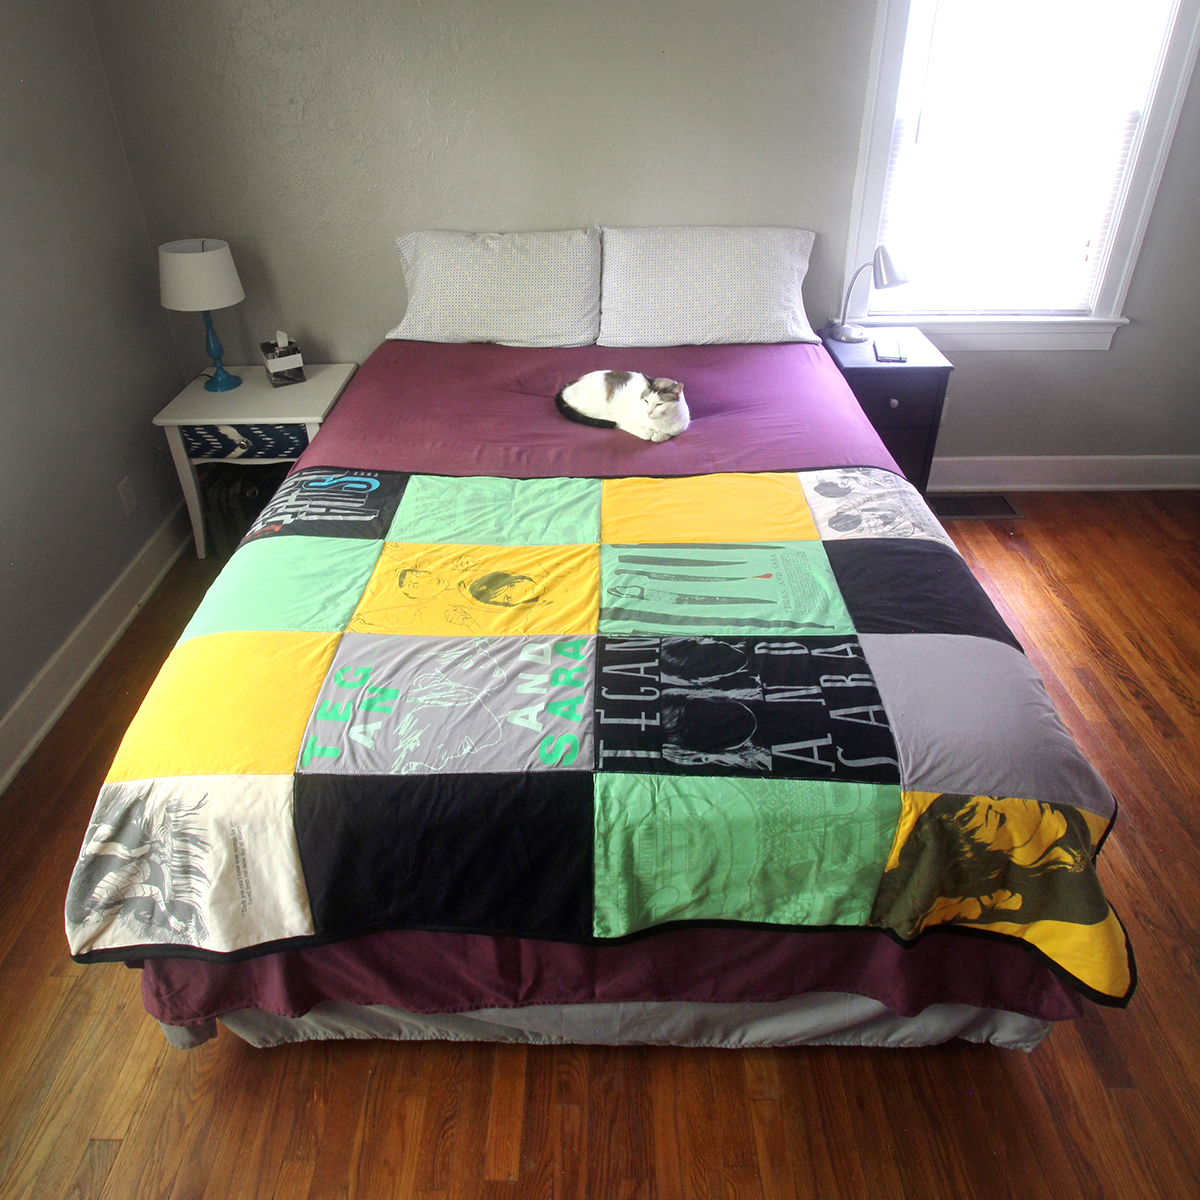 How to make your own t-shirt quilt